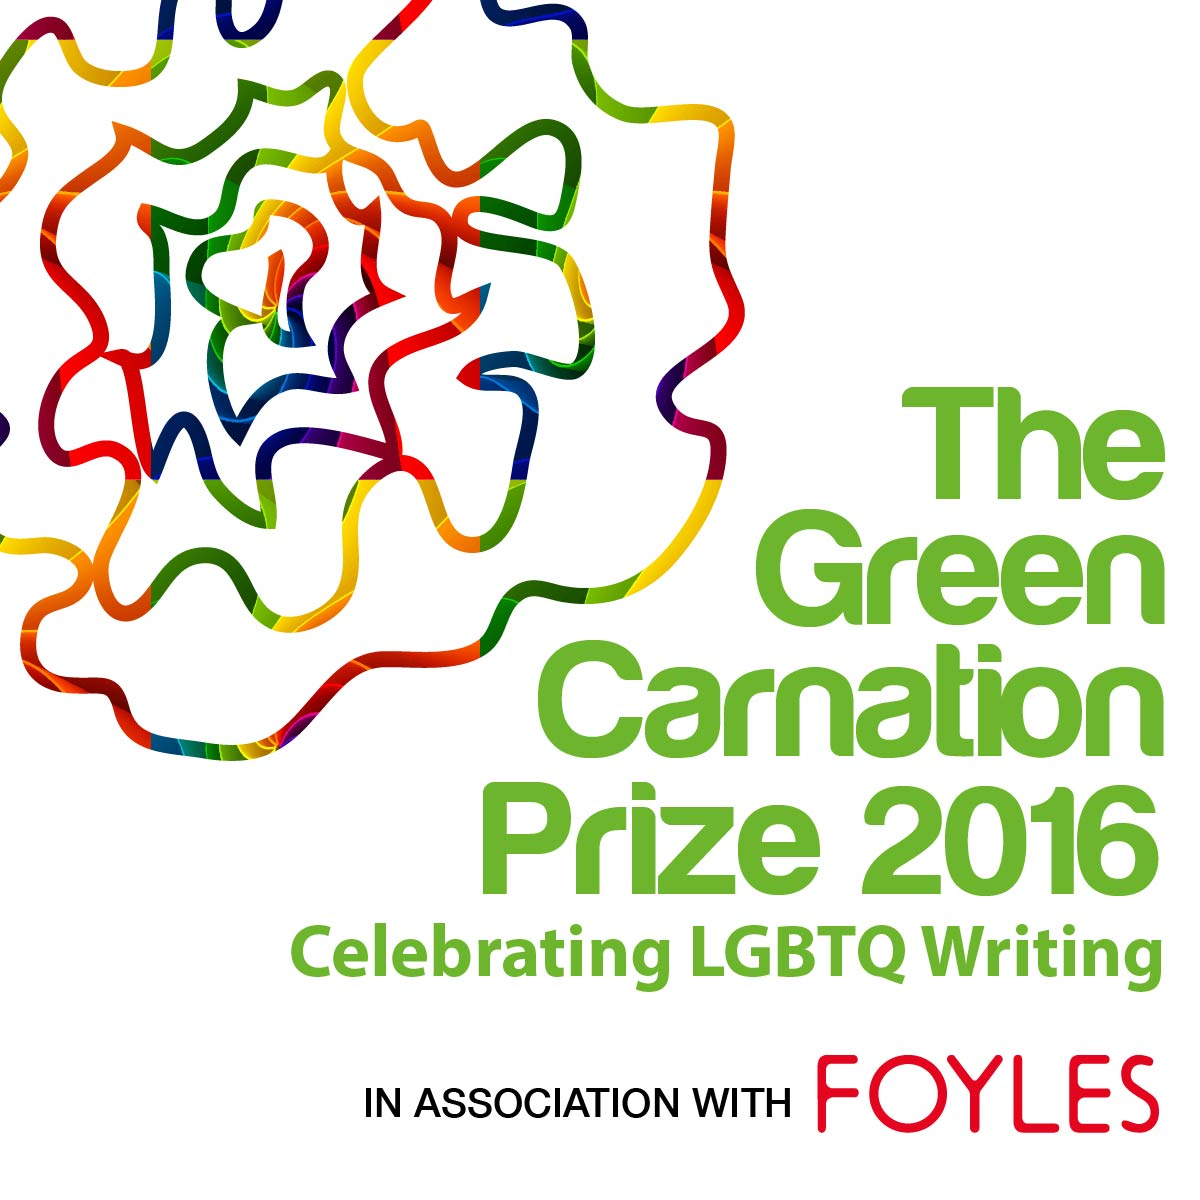 The Green Carnation Prize